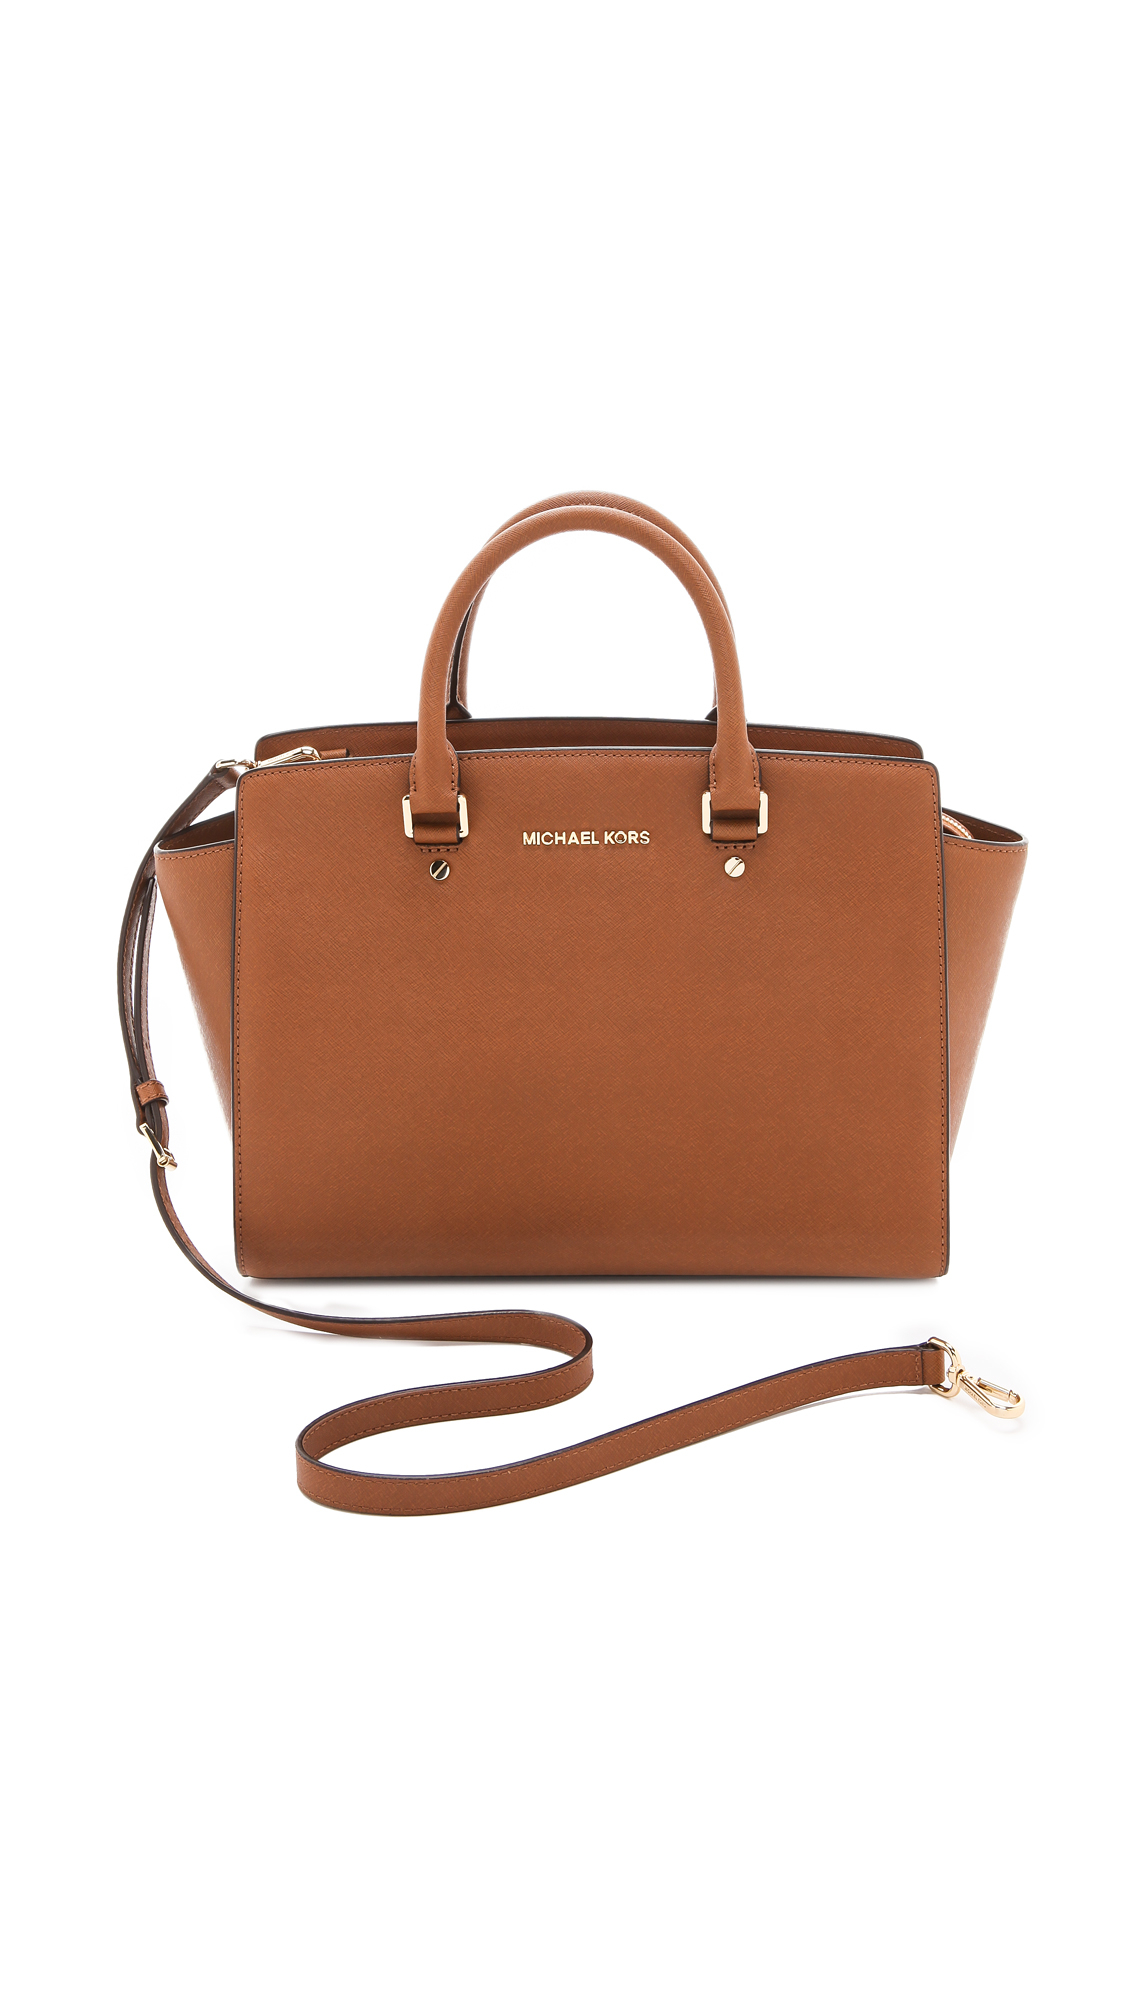 michael michael kors selma large saffinano leather tote in brown luggage lyst. Black Bedroom Furniture Sets. Home Design Ideas